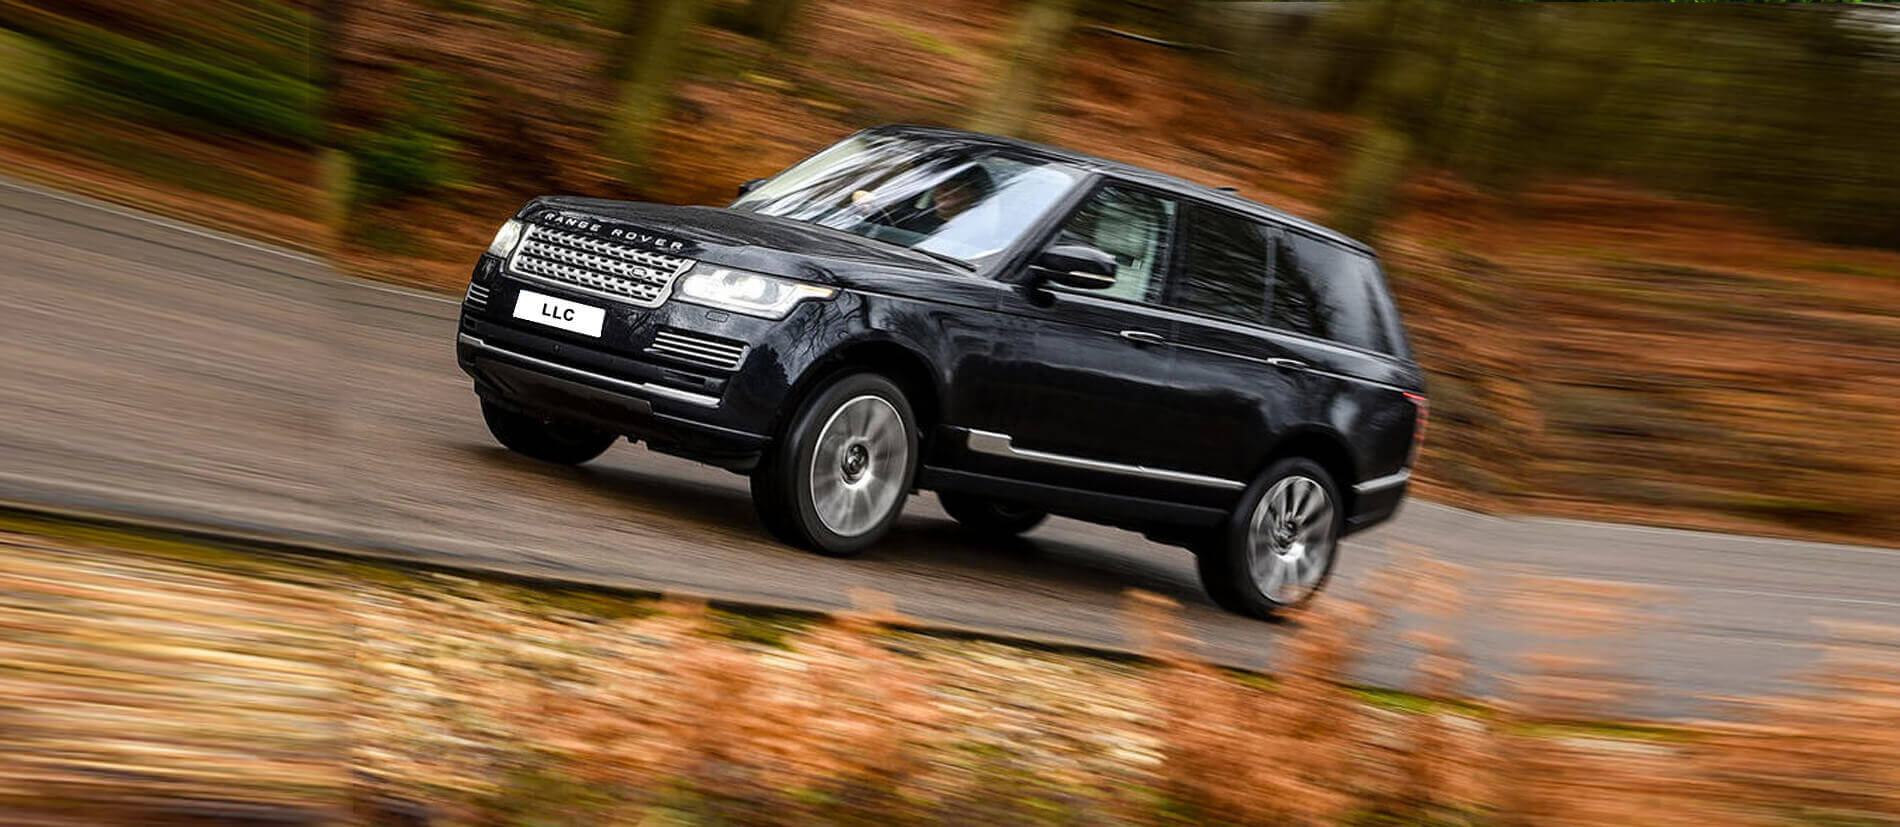 Range Rover Vogue Hire With Chauffeur In London Llc